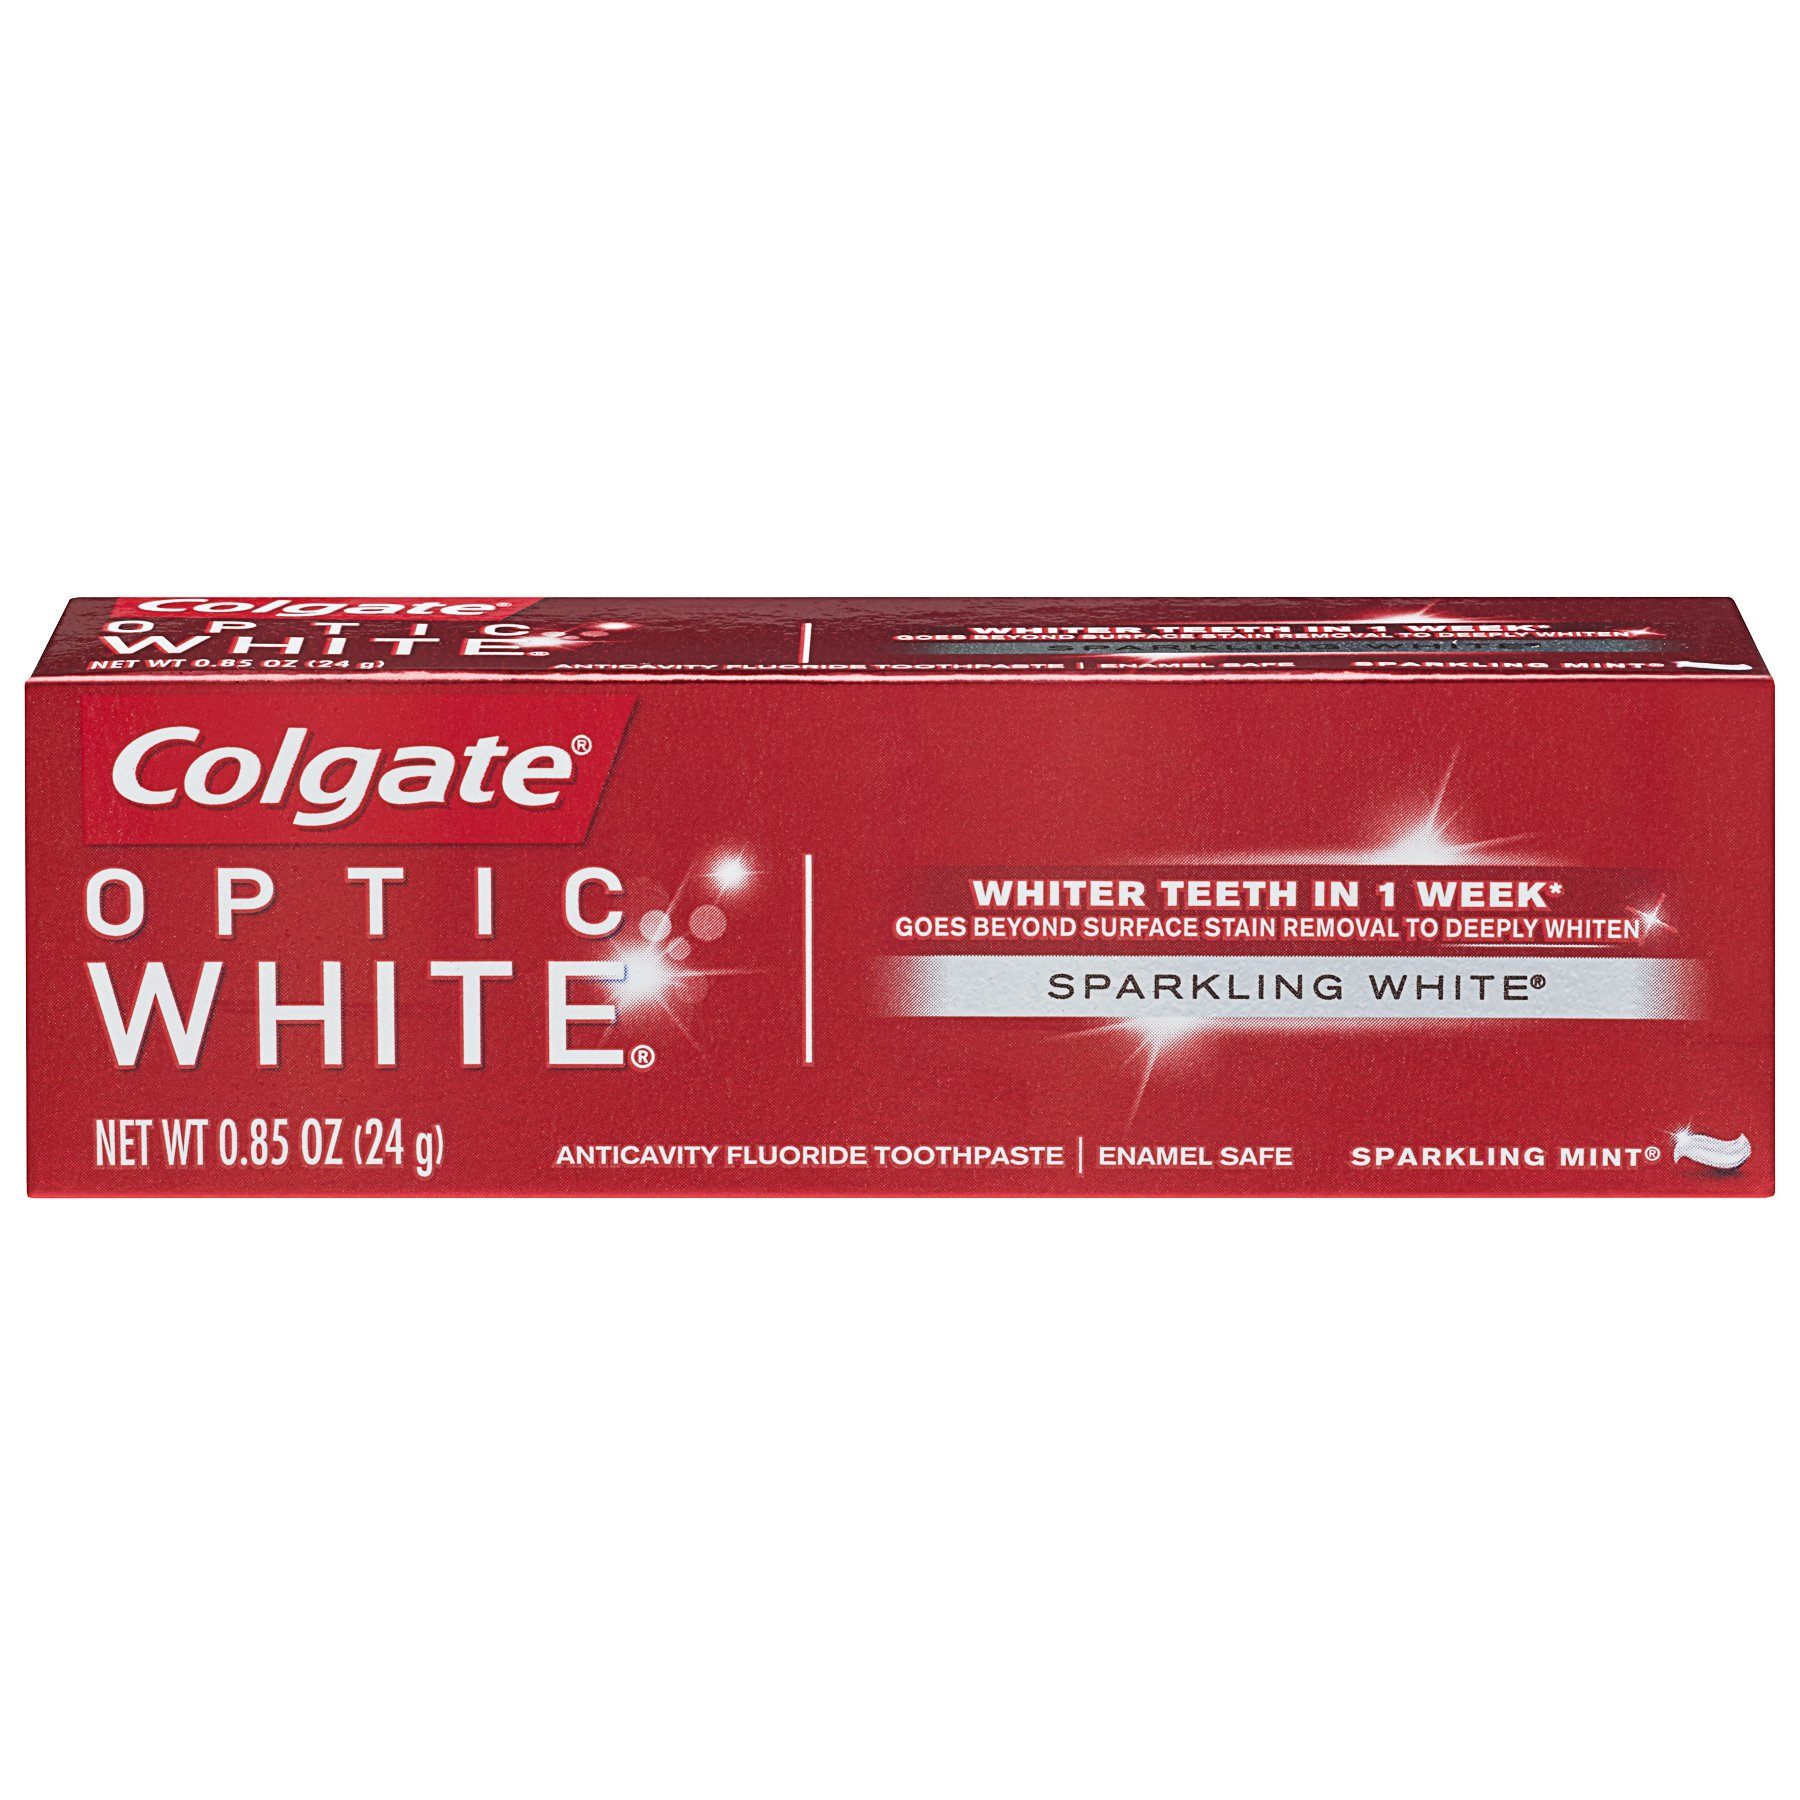 Colgate Optic White Whitening Toothpaste, Sparkling White - 0.85 ounce (Case of 24)